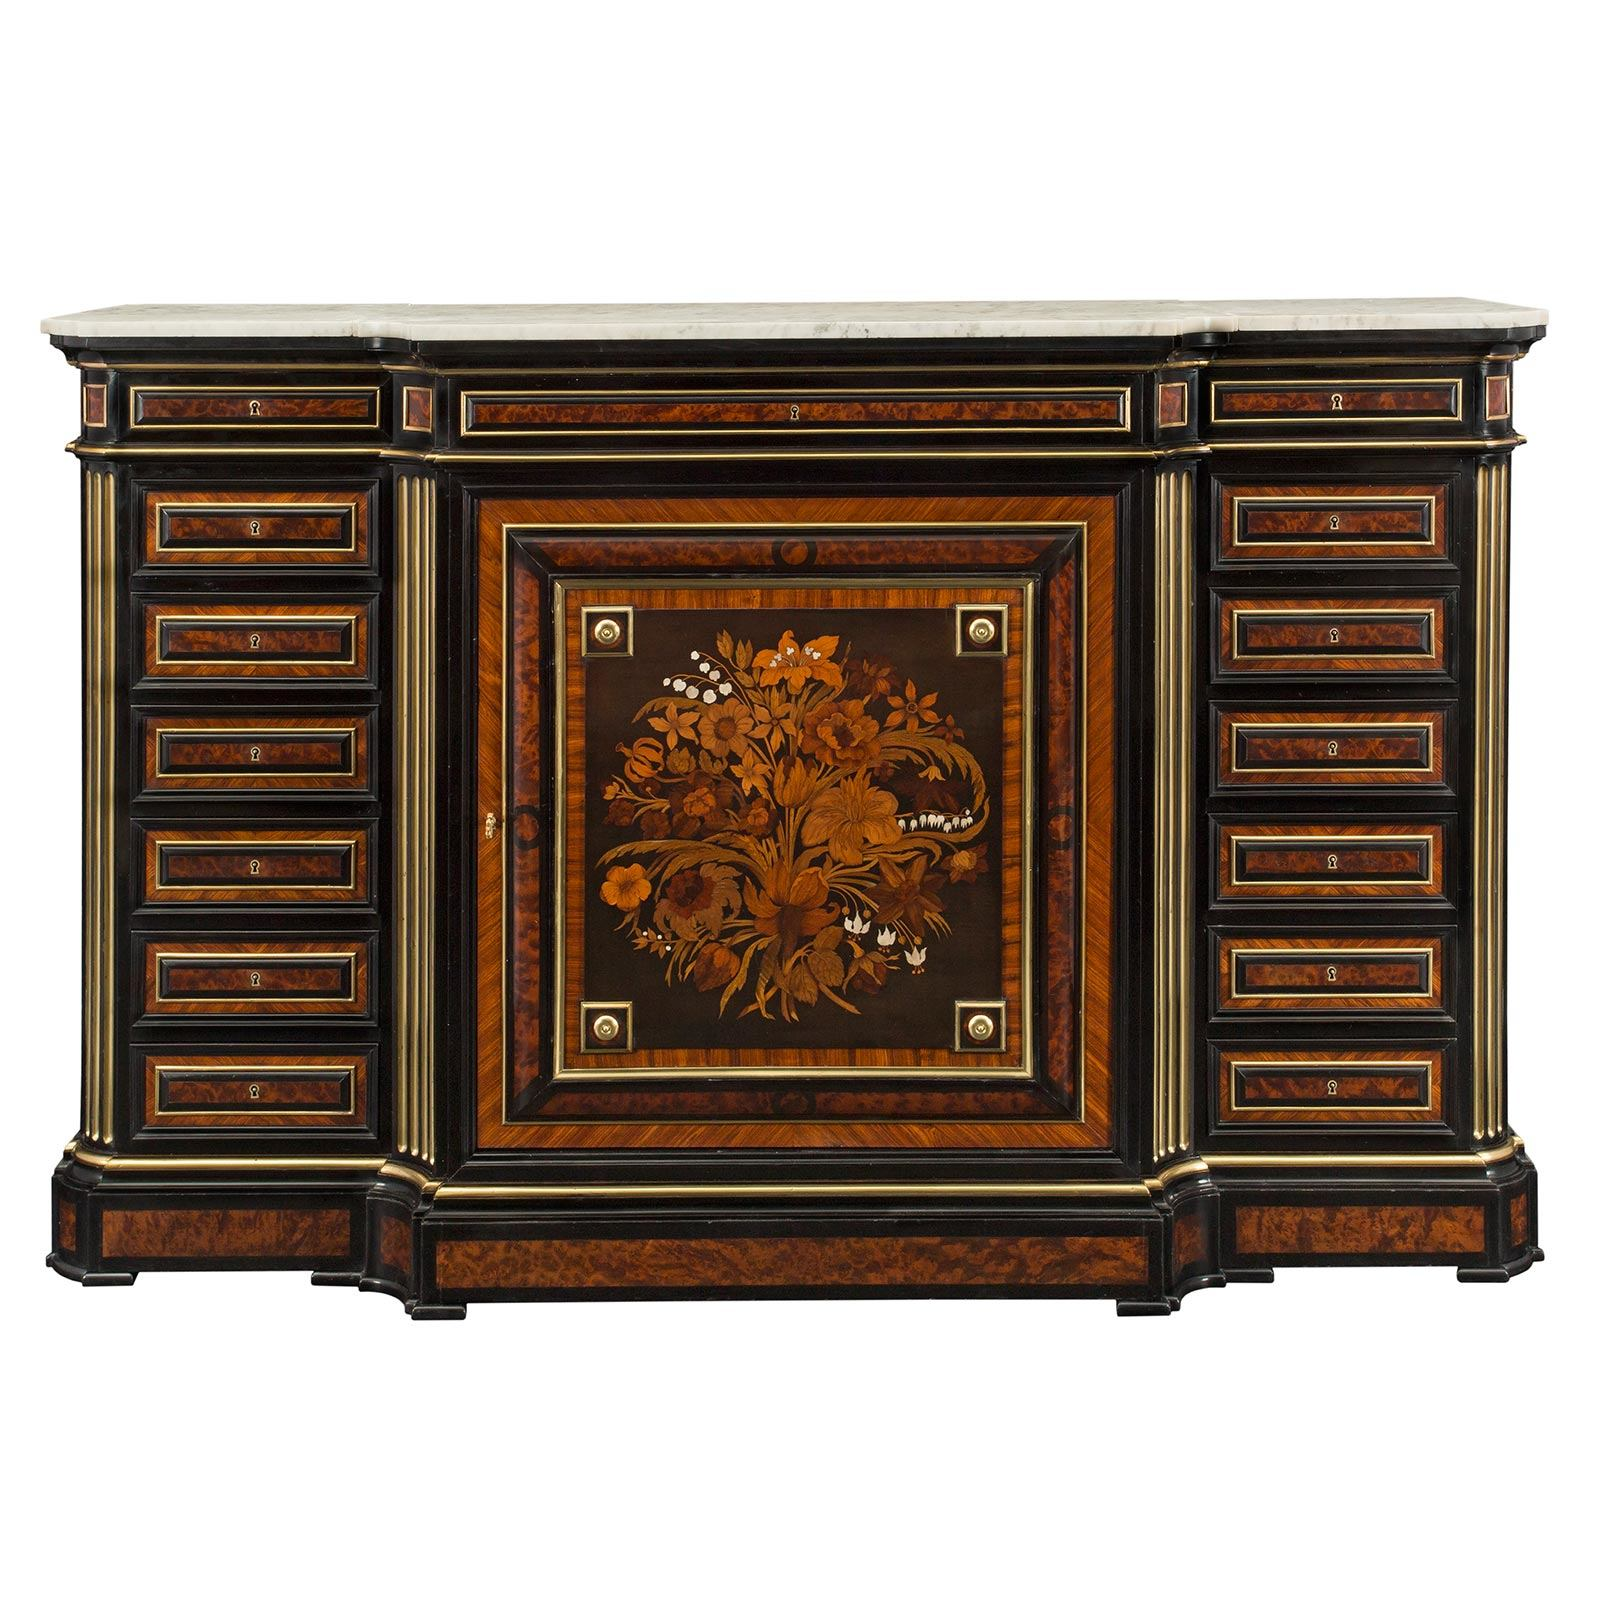 A Spectacular And Most Decorative Italian Louis XIV Period Giltwood And  Marble Top Center Table